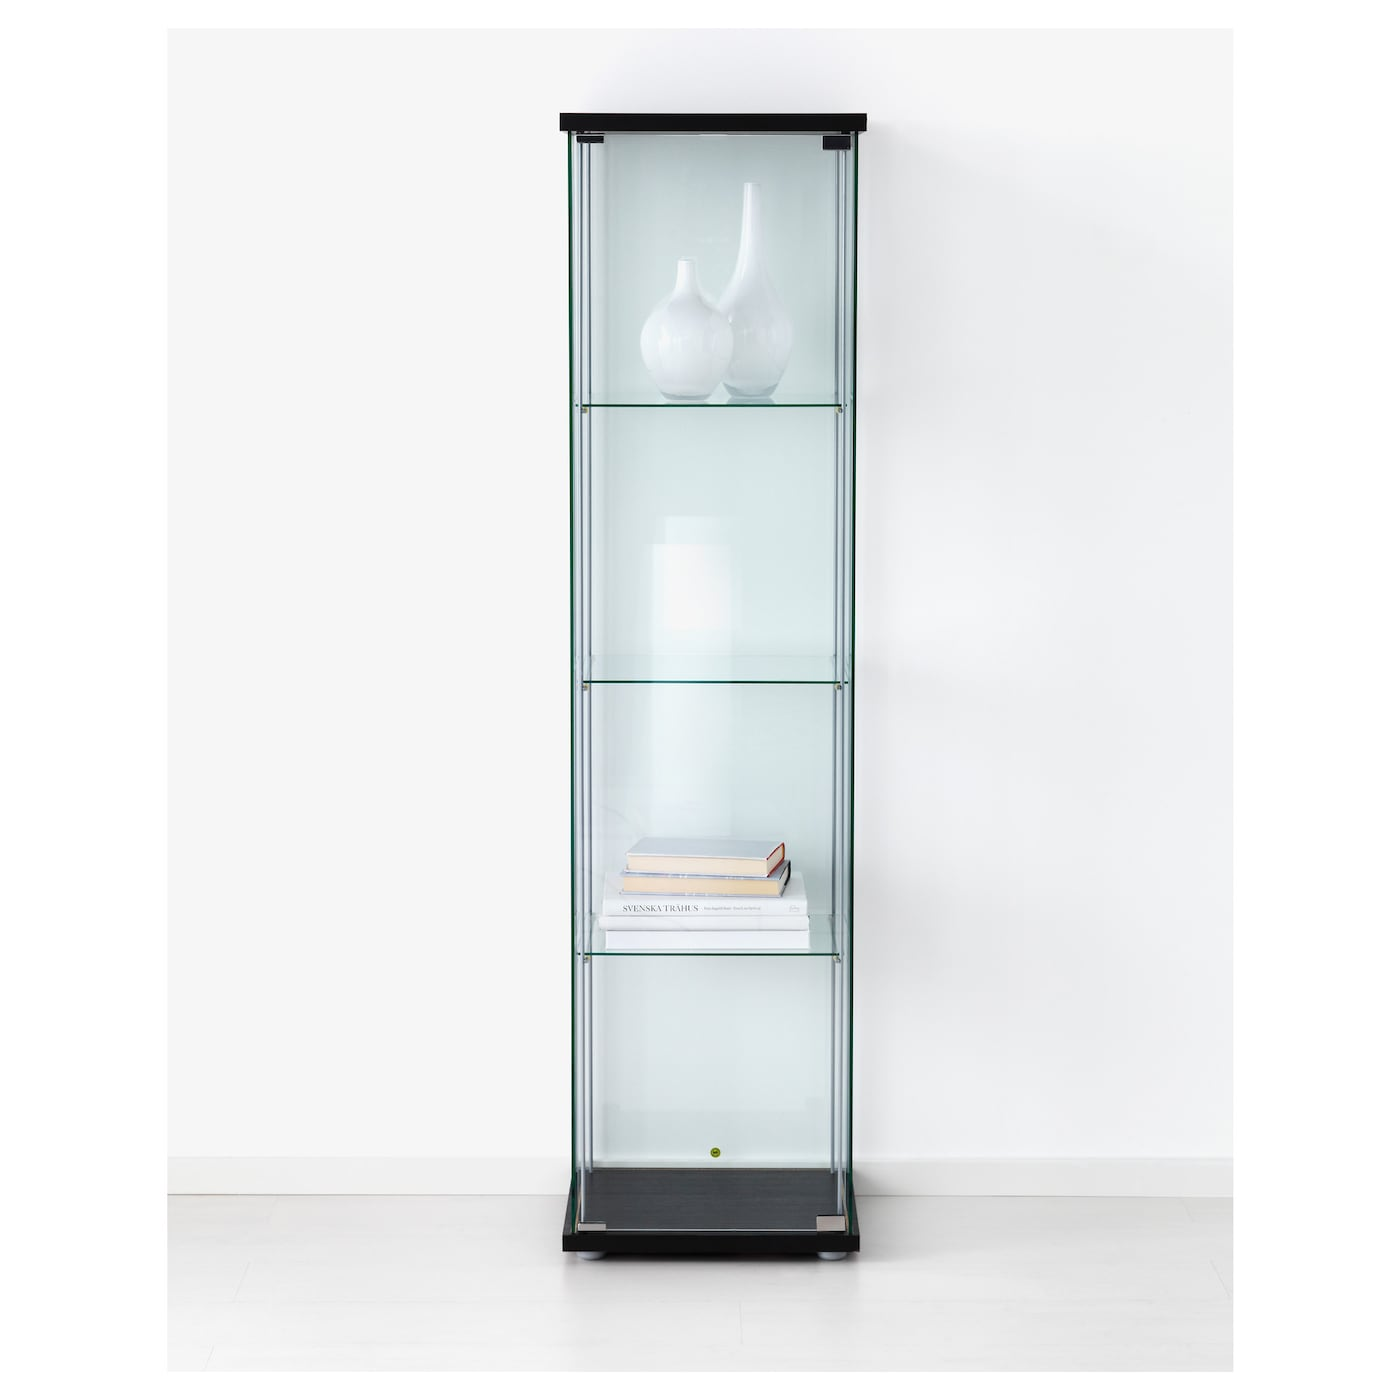 to ideas gallery curio cabinets decors idea storage how designs for proper the display and ikea cabinet choose